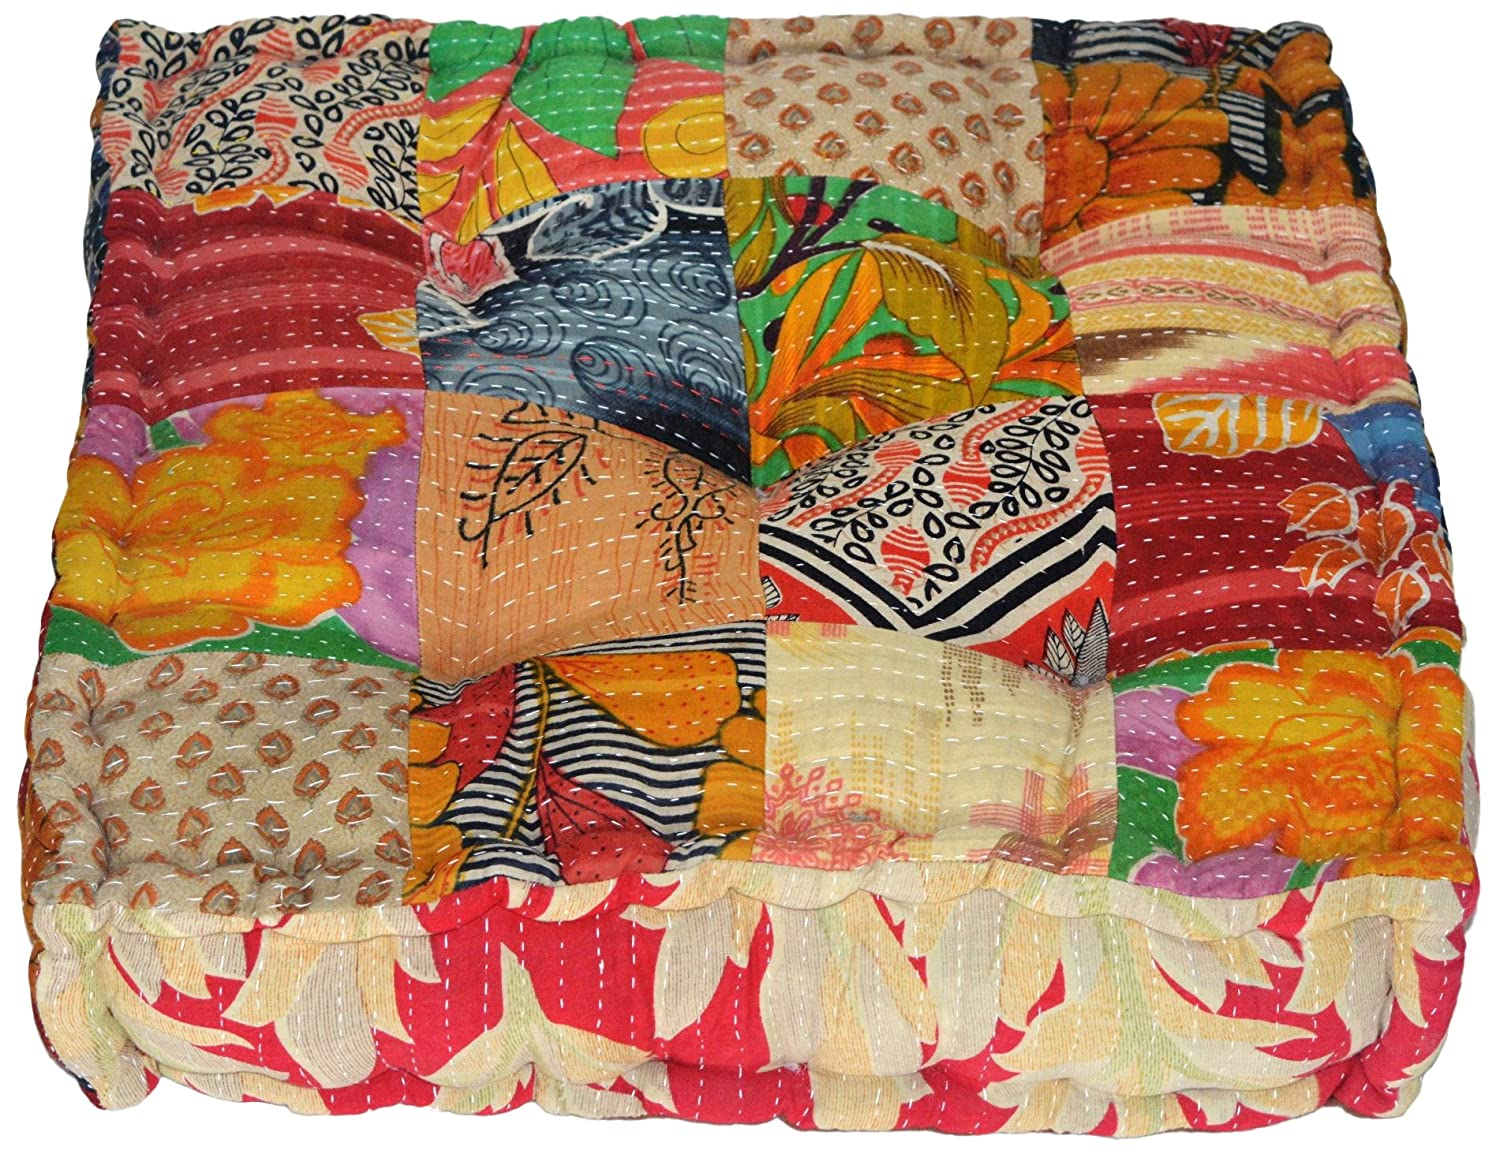 MARUDHARA RANGILA Stuffed Indian Vintage Kantha Patch Floor Cushion; Pouf Ottoman; Floor Pillow Yoga Pillow 16 Patch 5952056